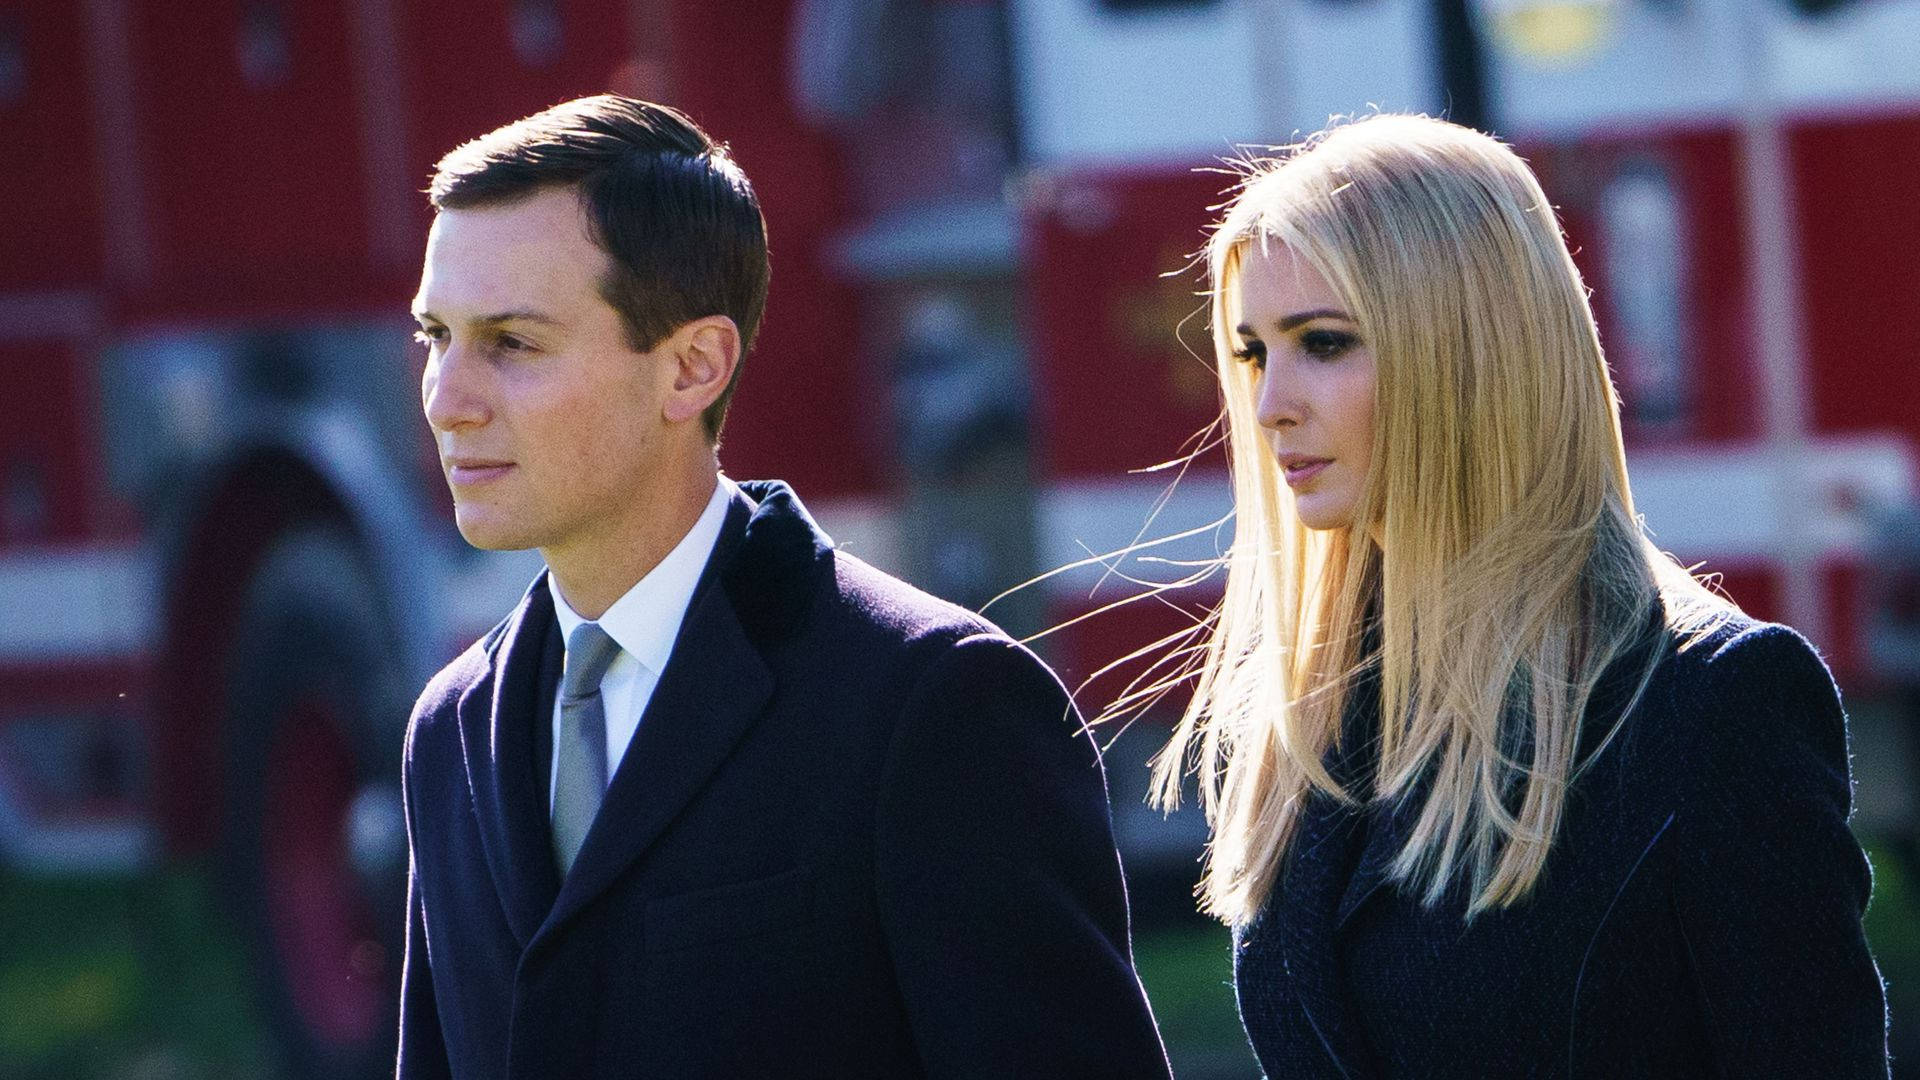 Jared Kushner and Ivanka Trump head to Pittsburgh in October after the synagogue shooting. (Mandel Ngan/AFP/Getty Images)